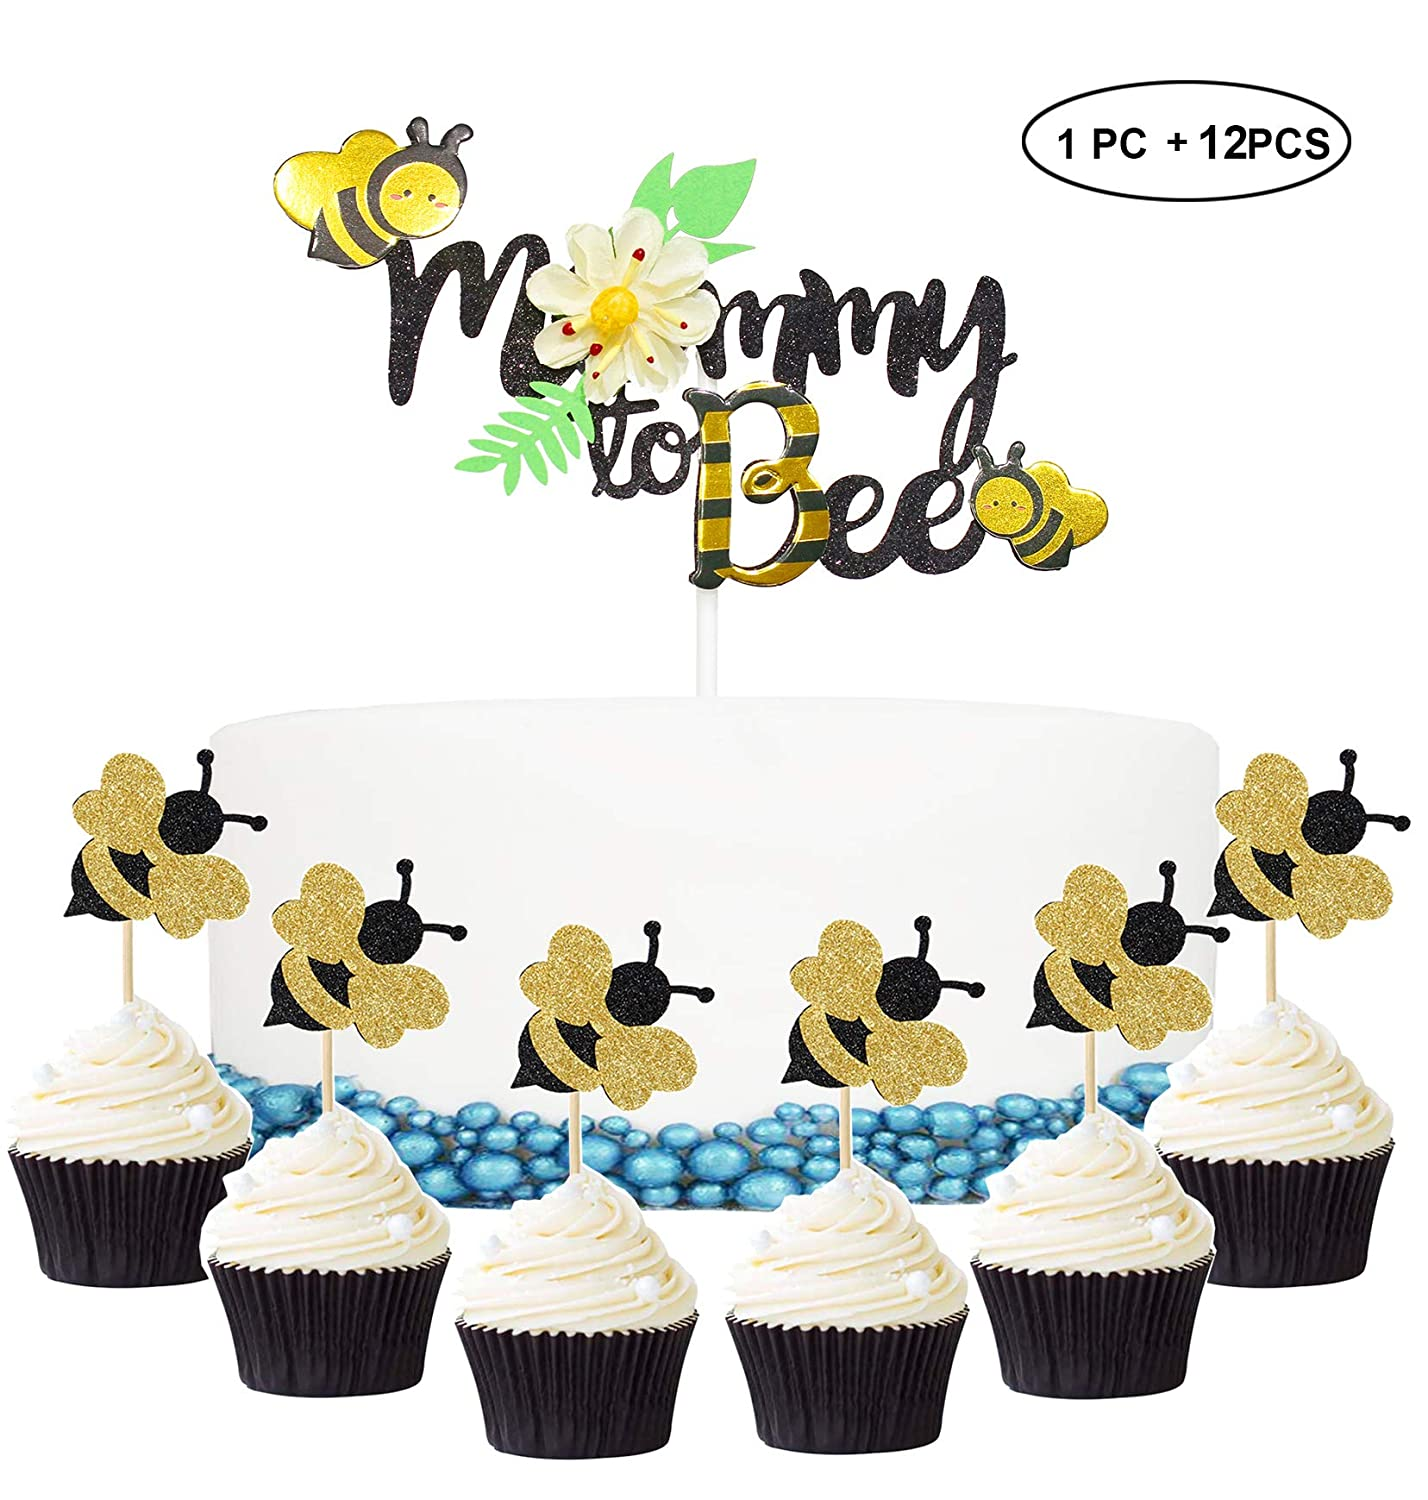 Bumble Bee Cupcake Toppers Set 12pcs With 1 Large Cake Topper Baby